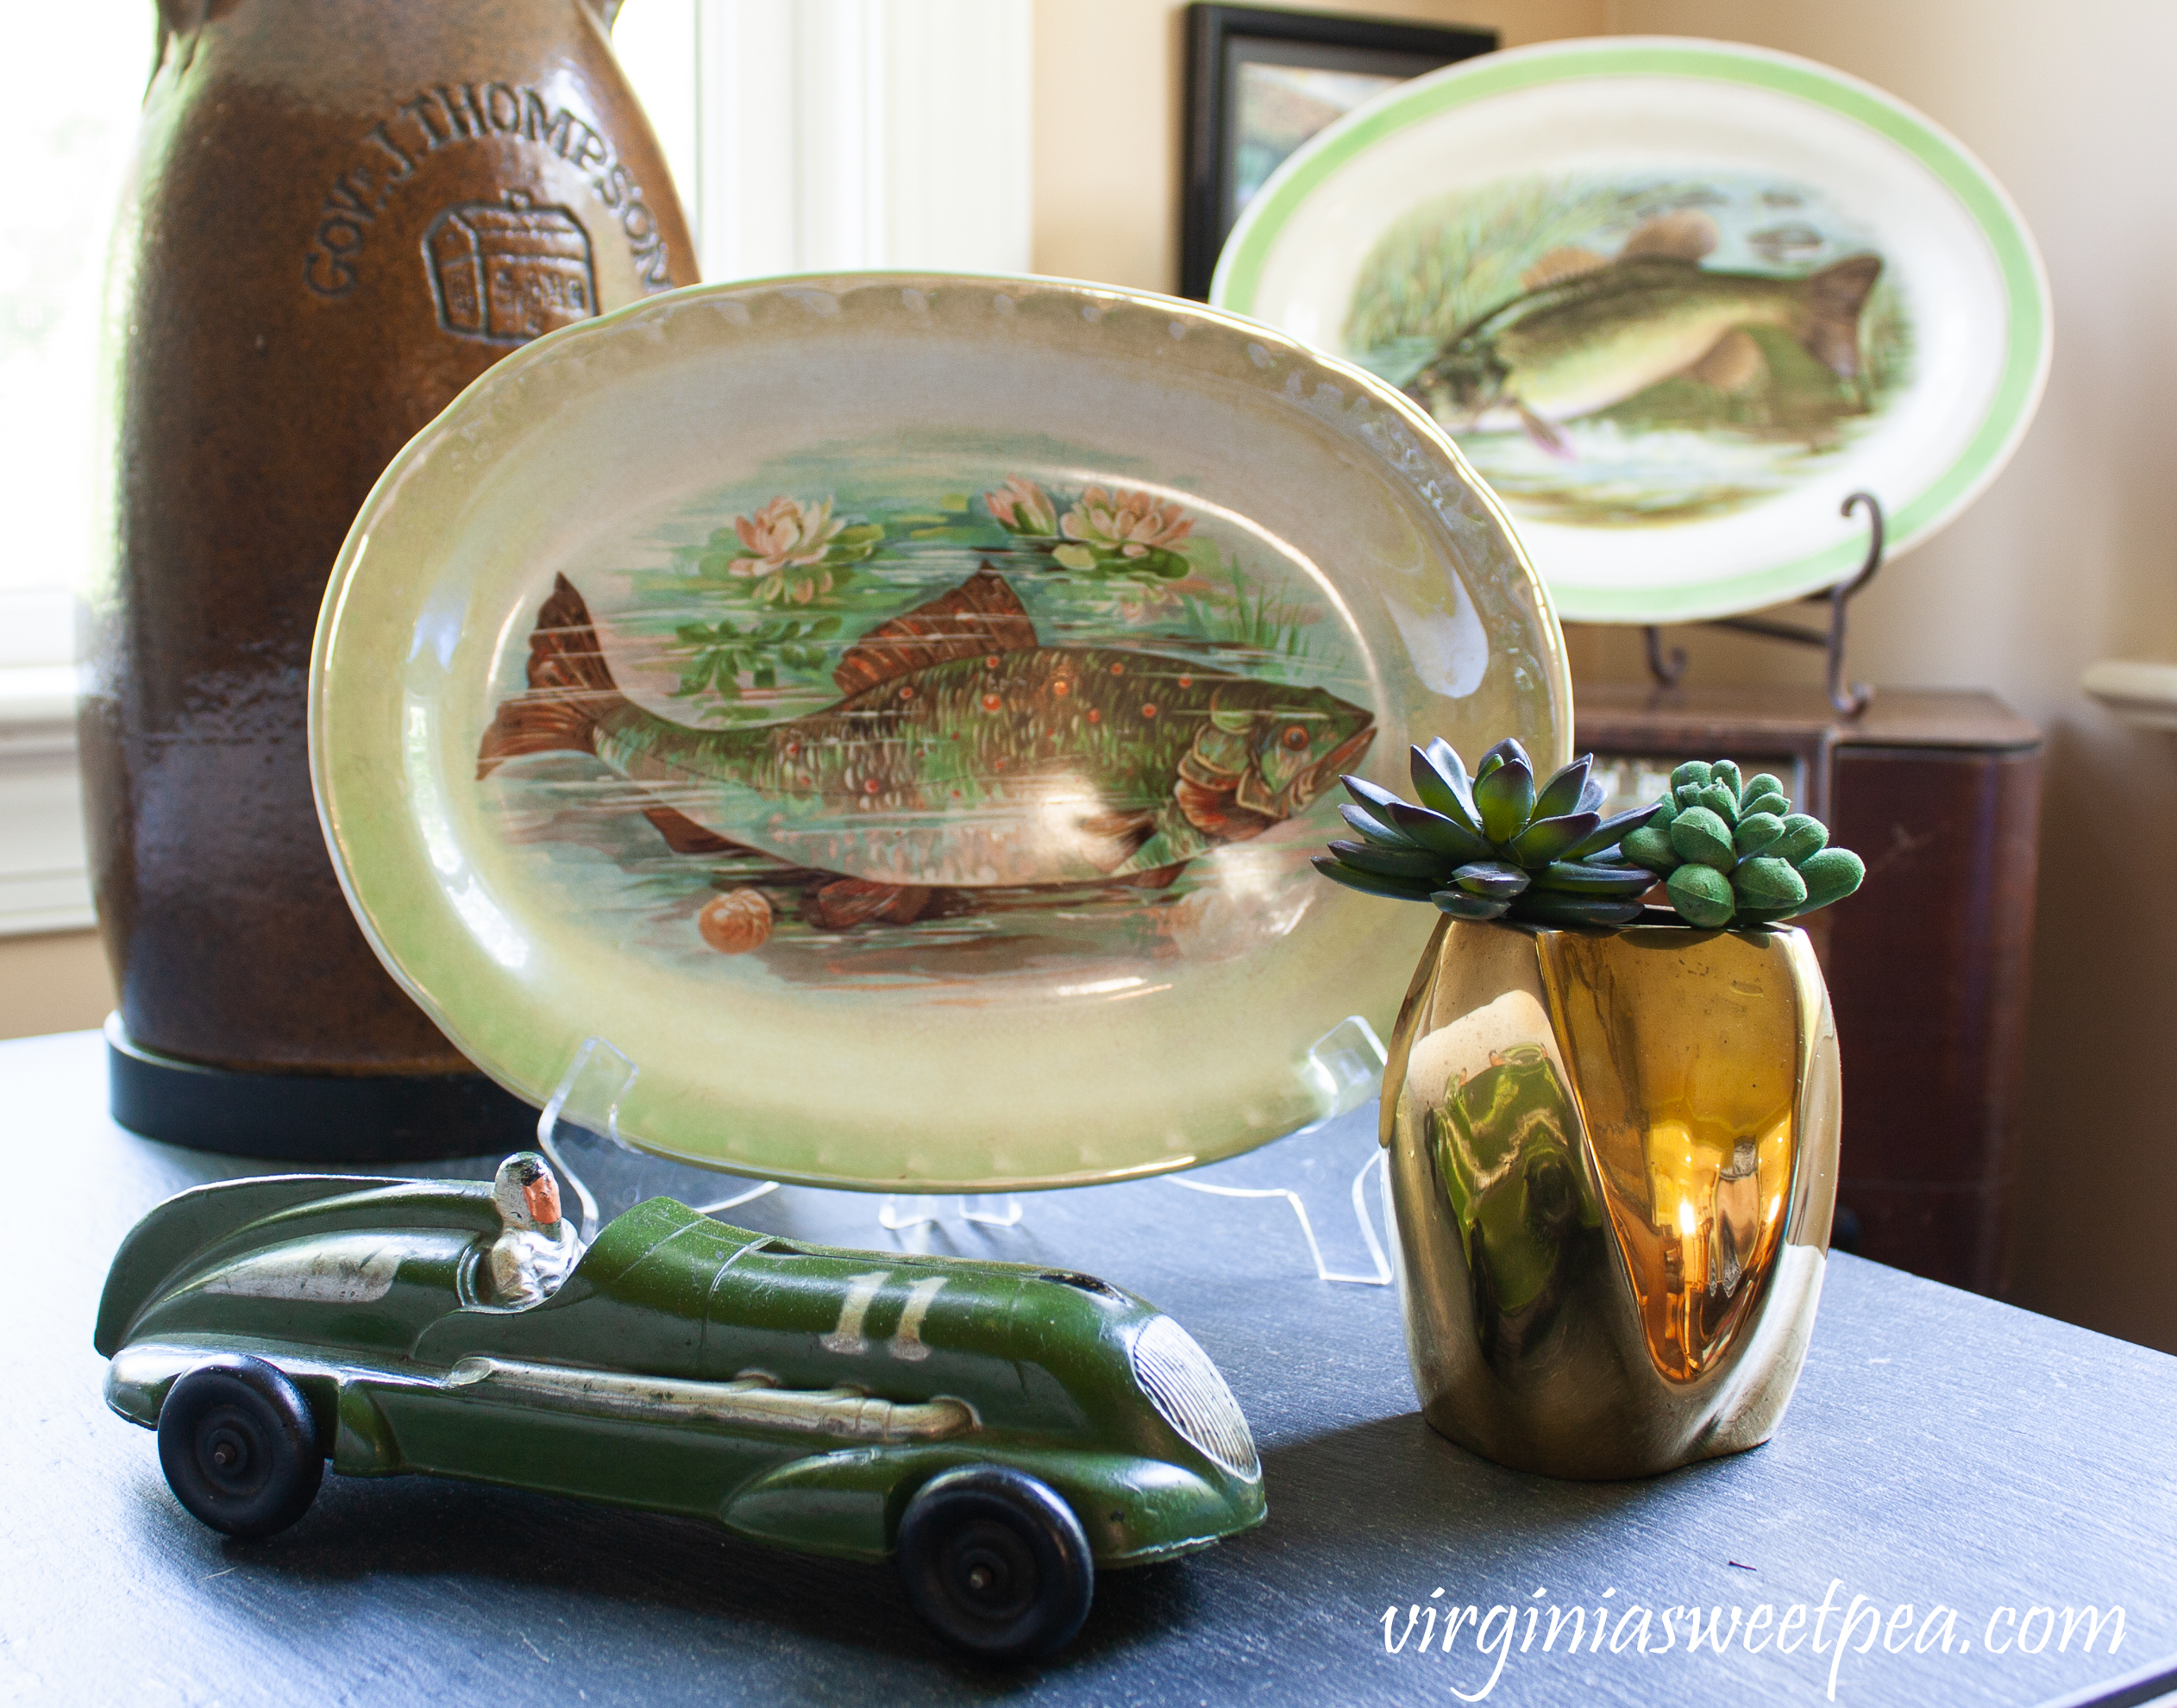 Fish themed summer vignette with a 1940's toy car.